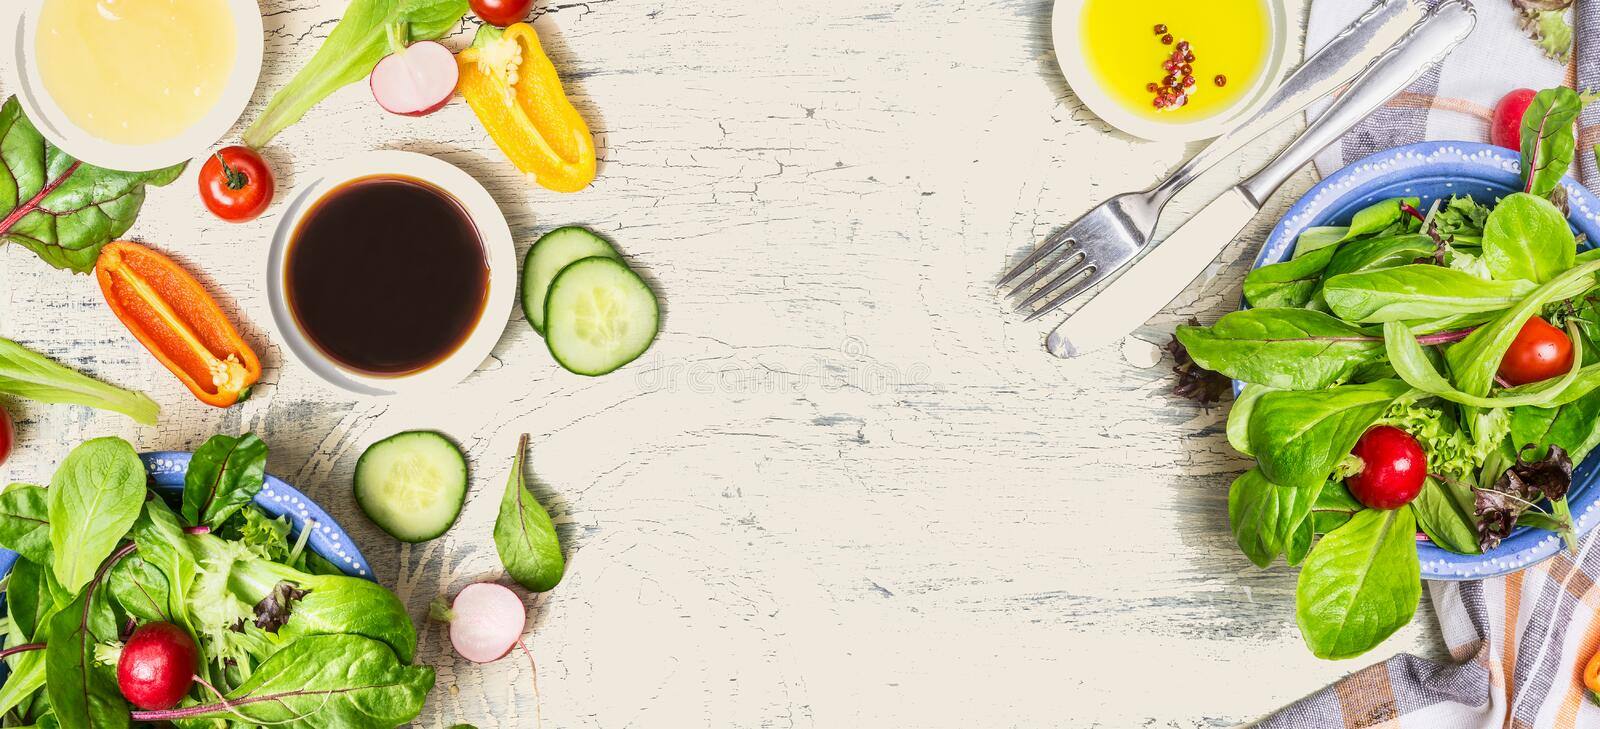 Tasty salad making with vegetables and dressing ingredients on light rustic background, top view, banner. Healthy lifestyle or detox diet food concept royalty free stock image